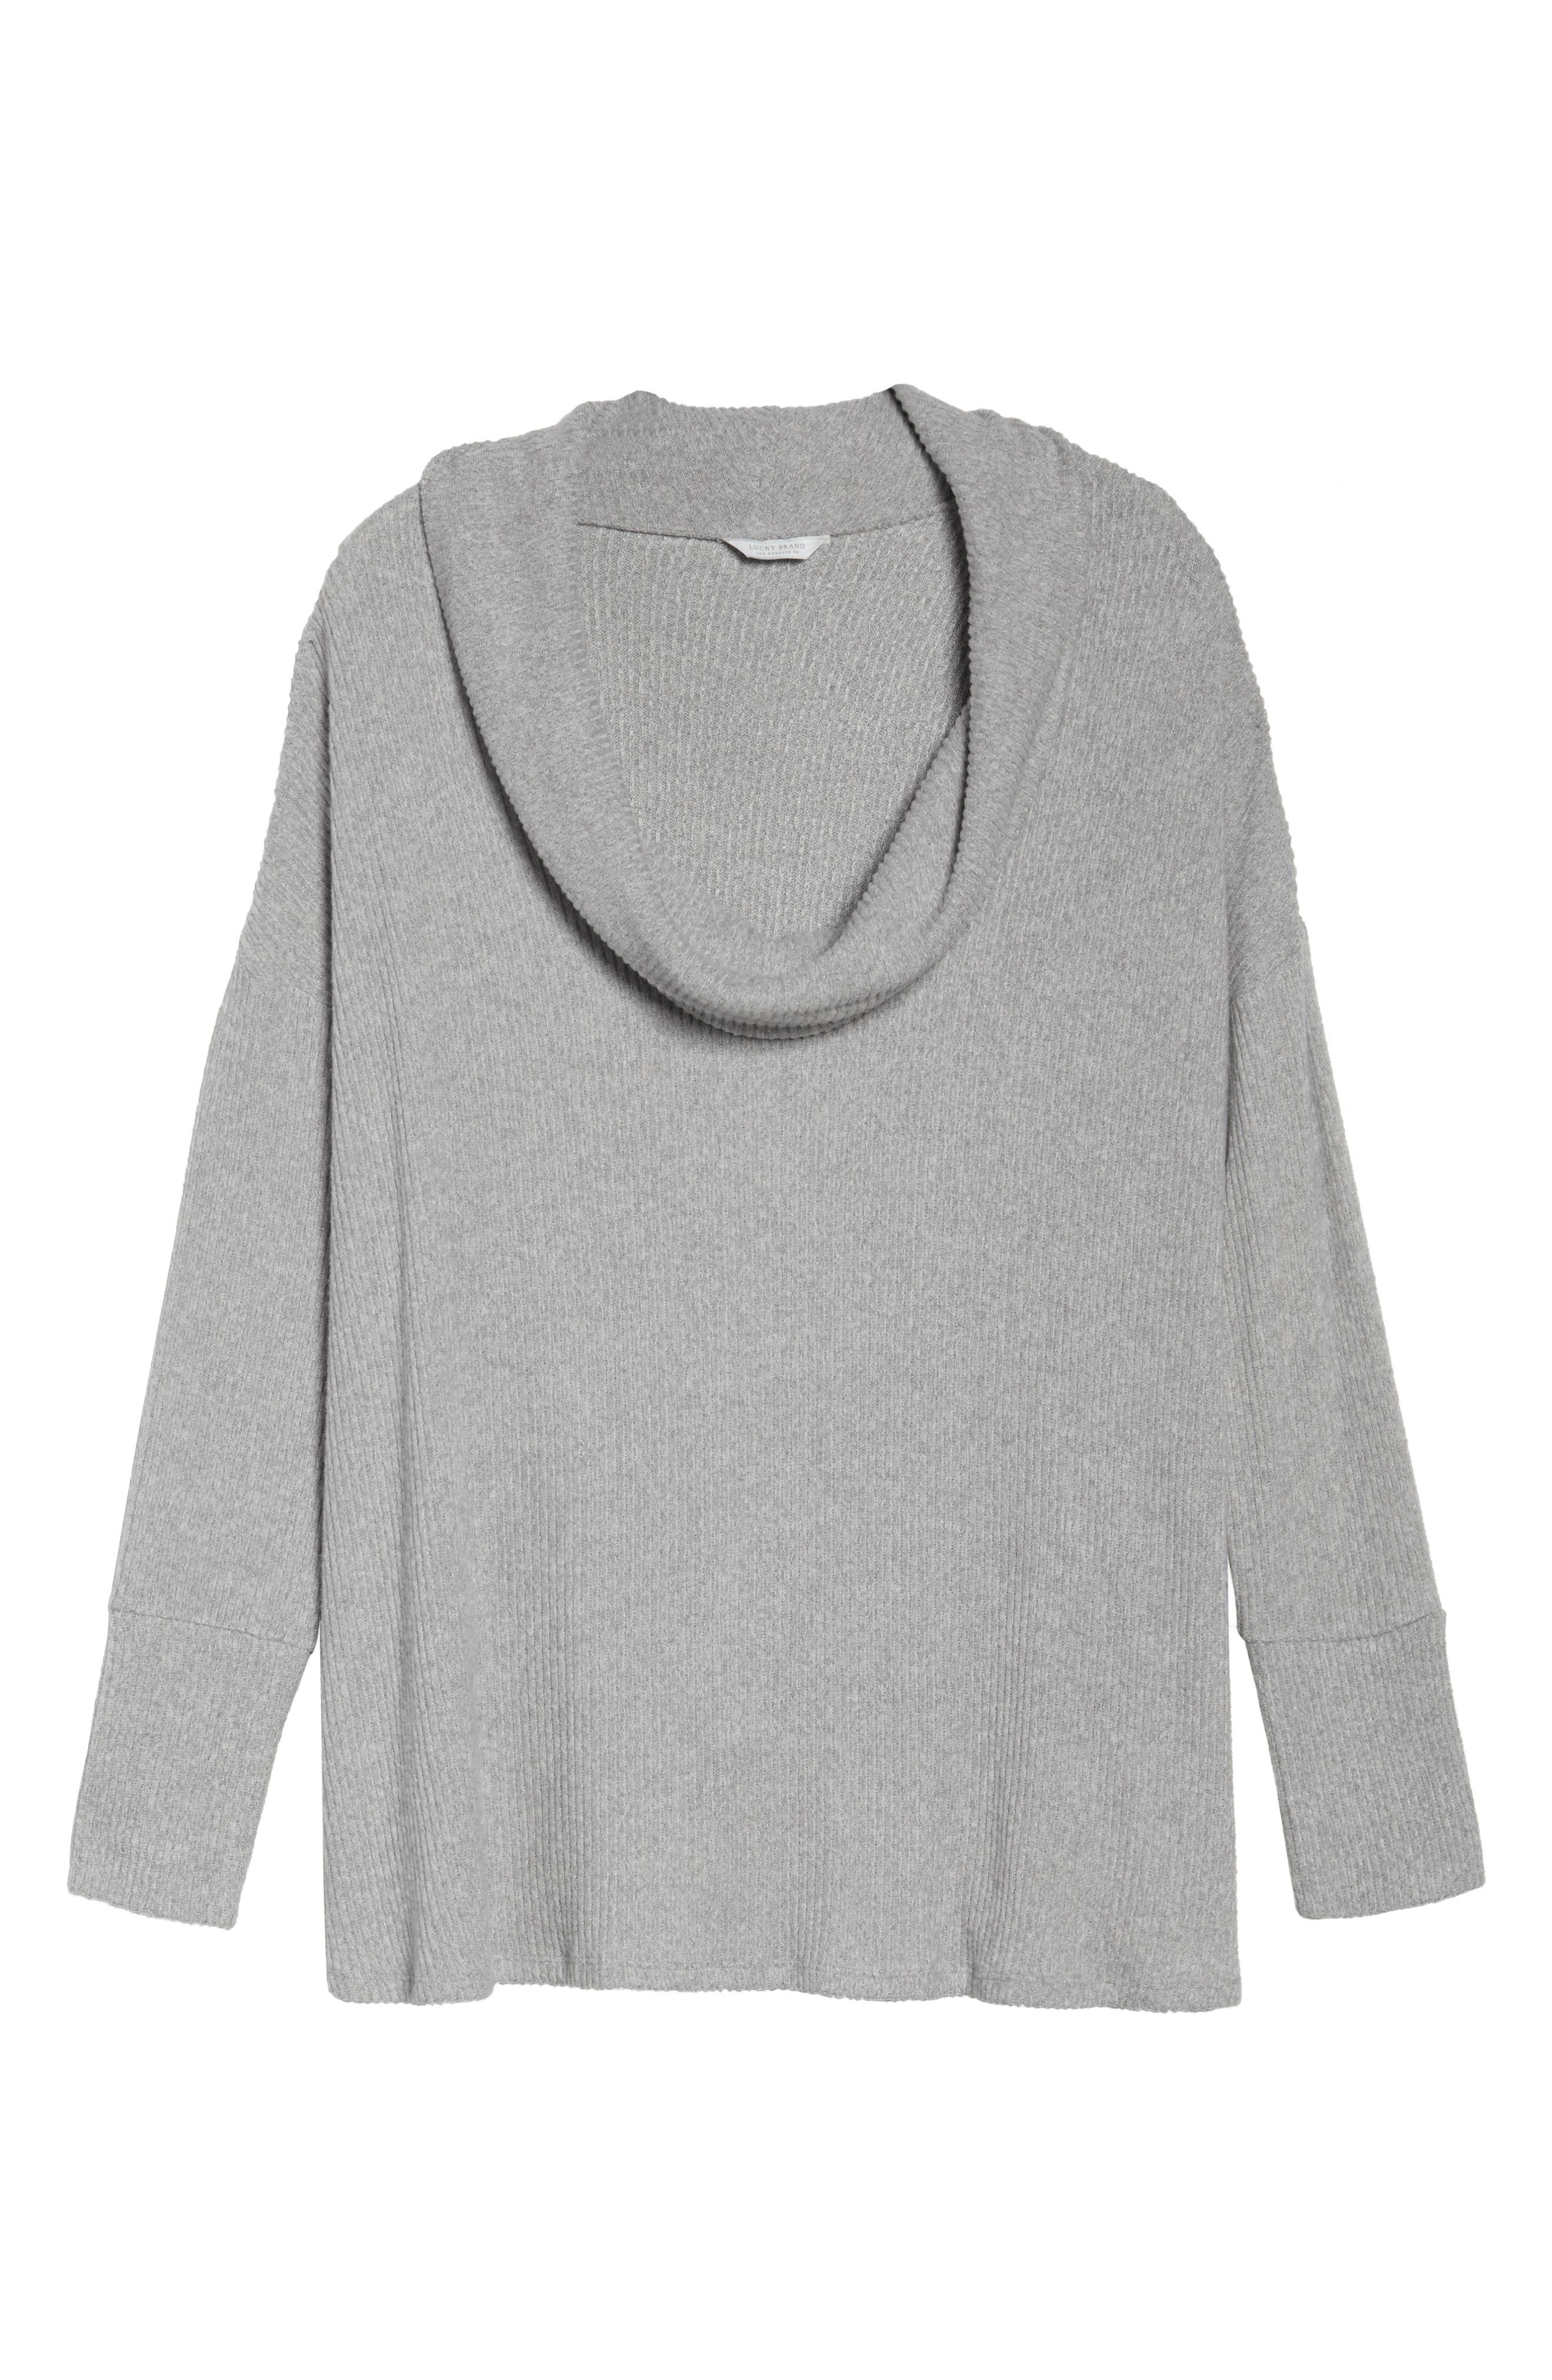 Cowl Neck Pullover,                             Alternate thumbnail 6, color,                             Heather Grey